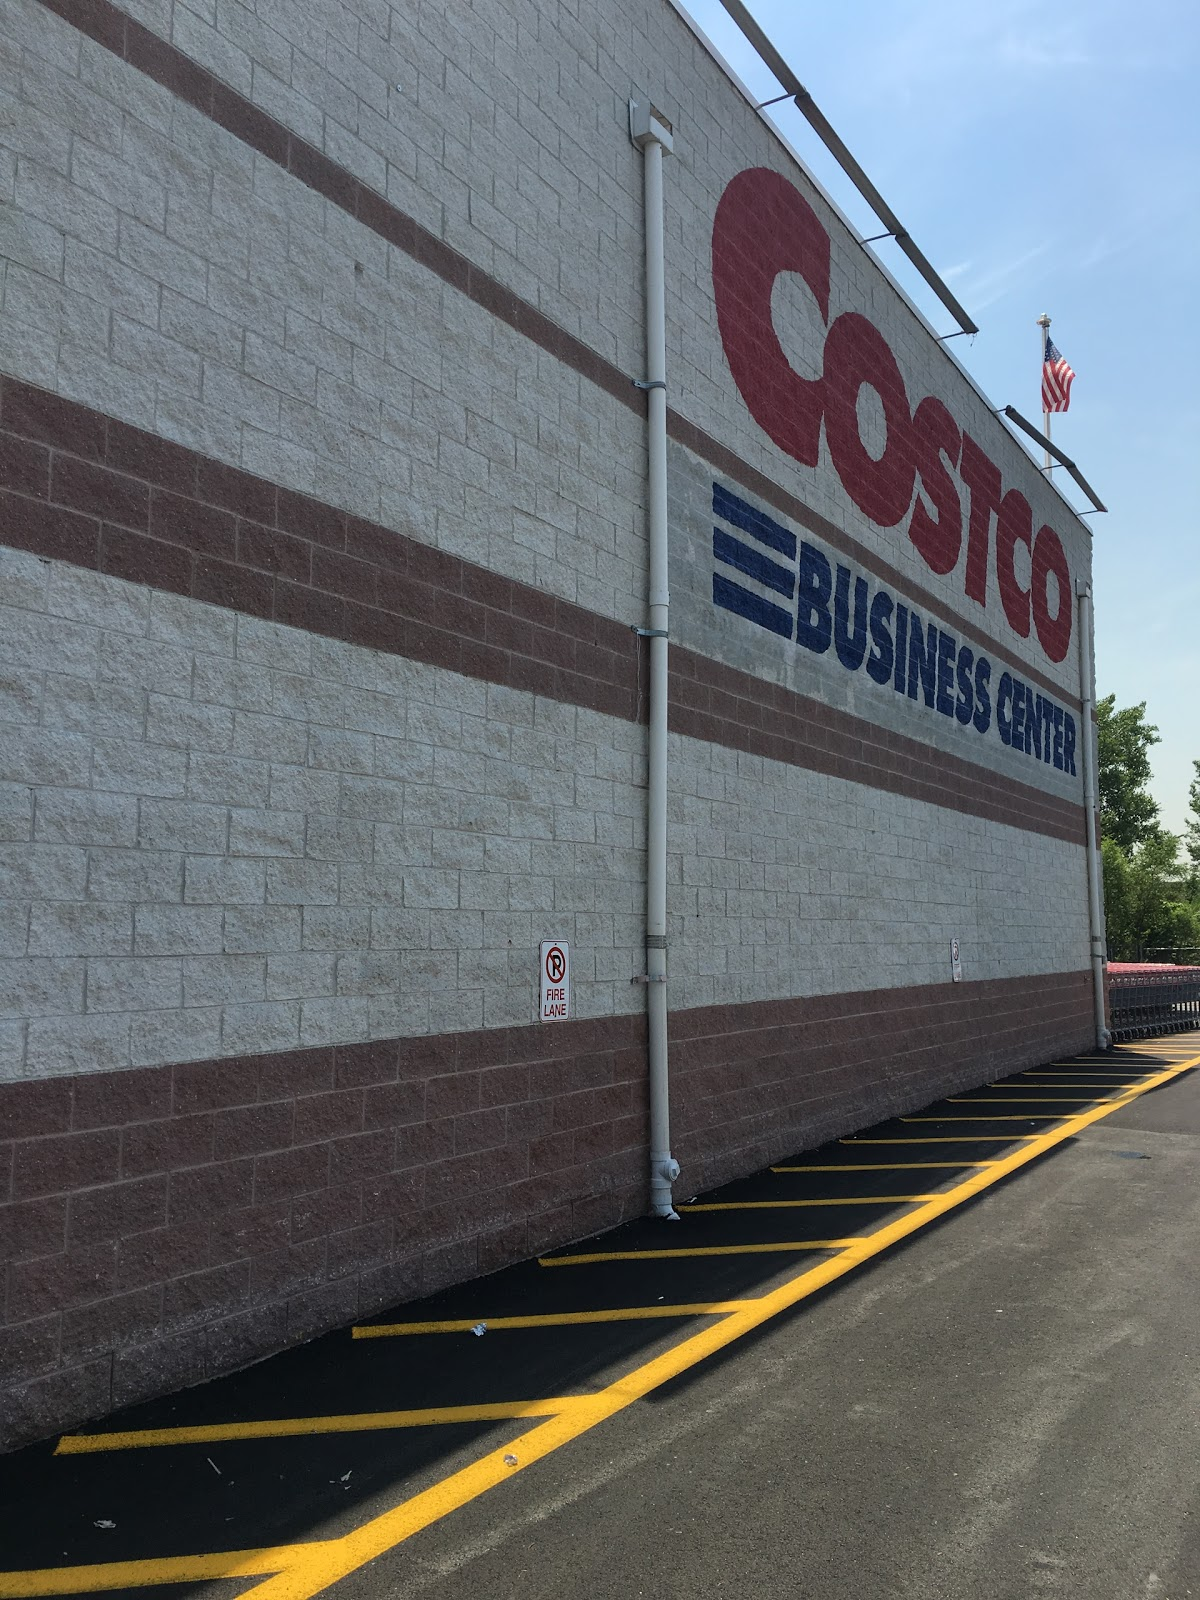 do you really know what you re eating first day for costco visa starting today the costco whole business center in hackensack is among the hundreds of costco warehouses in the united states that accept only visa